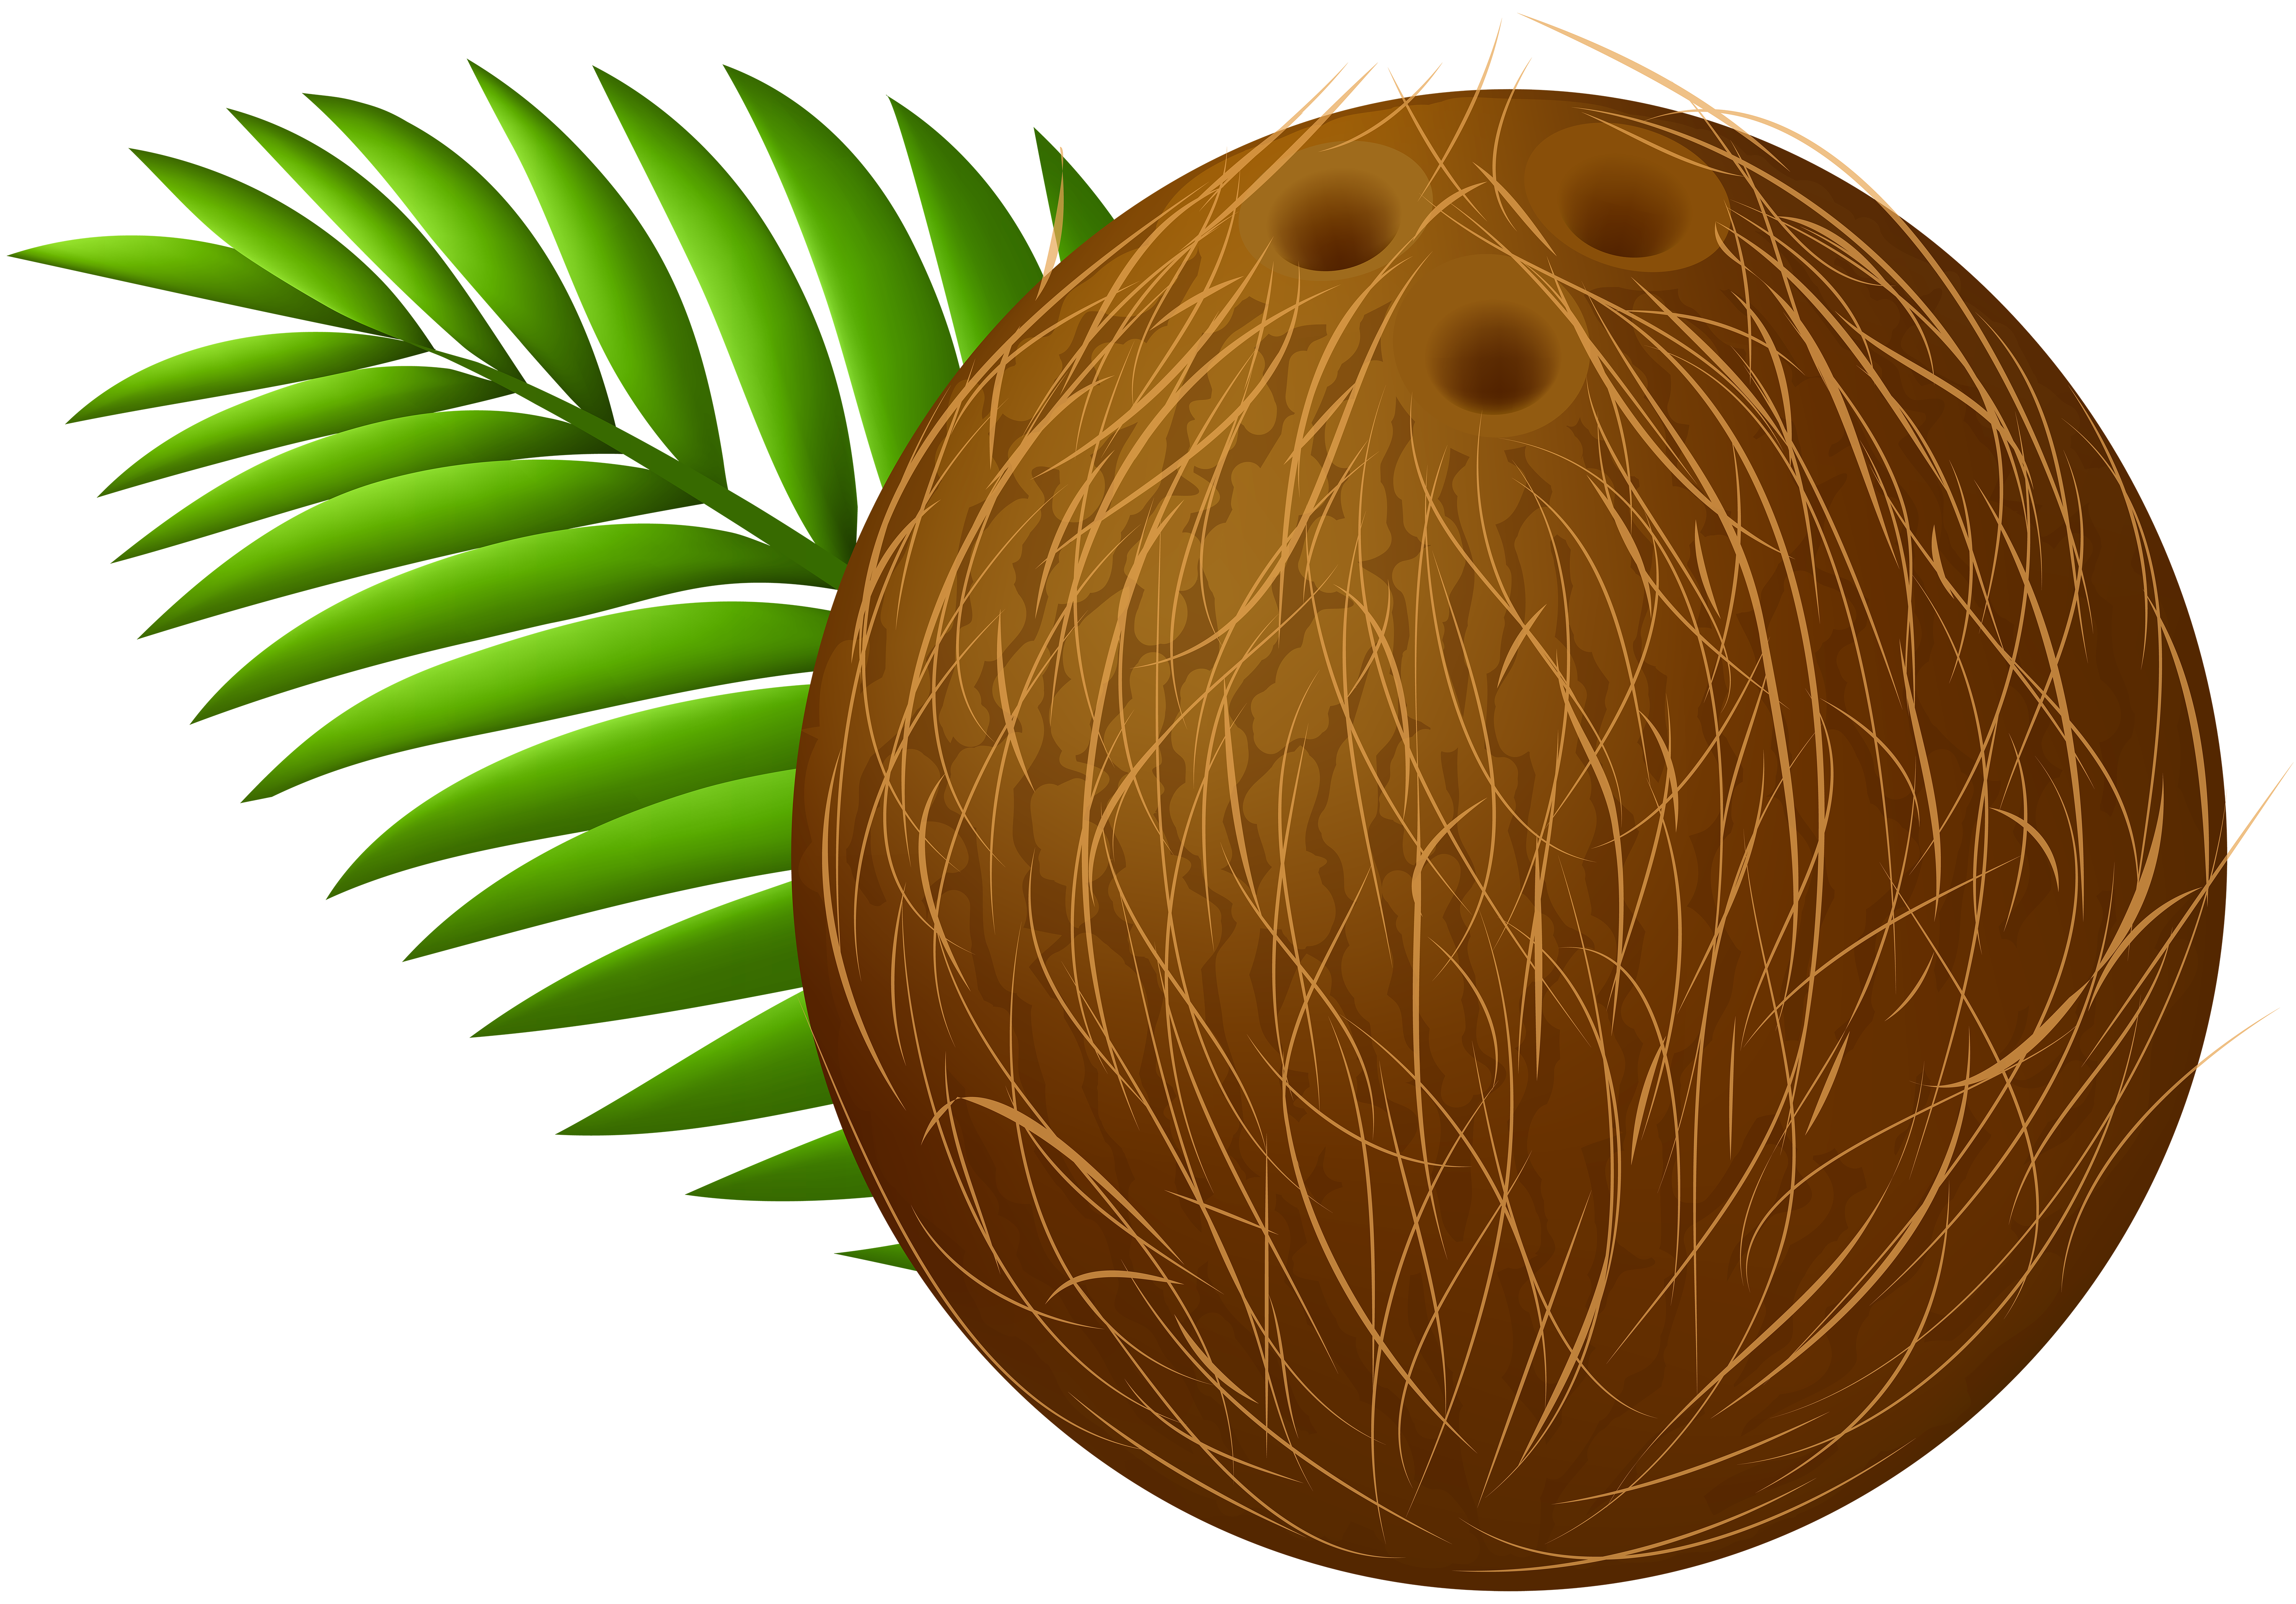 Clipart coconut image library library Coconut Transparent PNG Clip Art Image | Gallery Yopriceville ... image library library